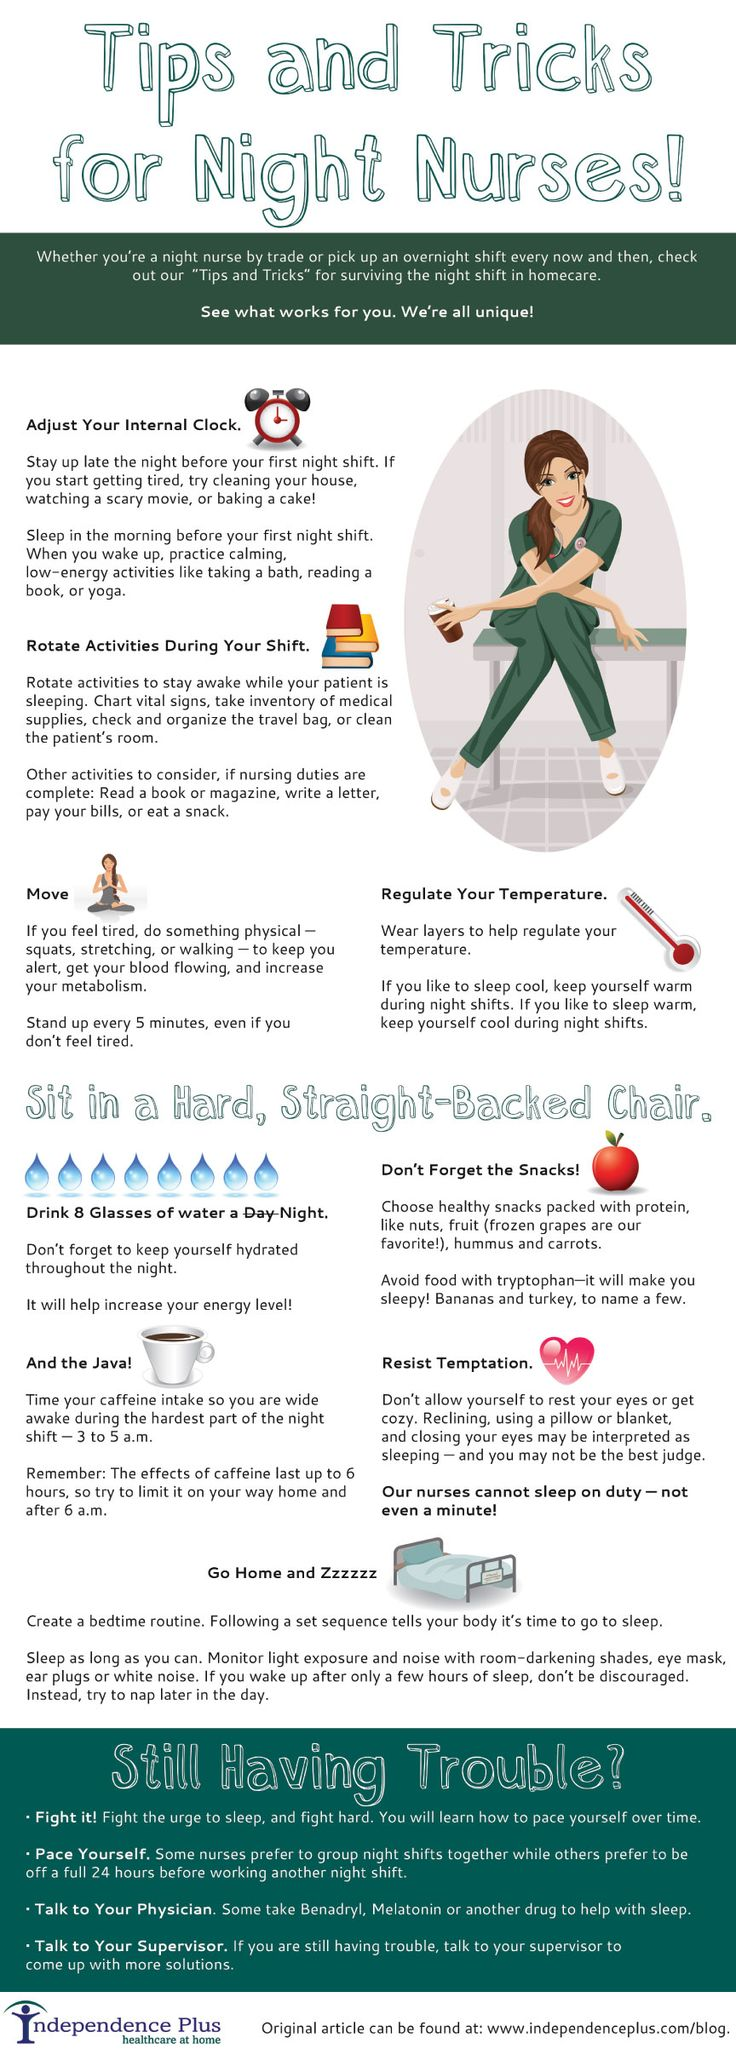 Night shift #nurses, check out this infographic to help get you through your shift, via Deb Dianne.